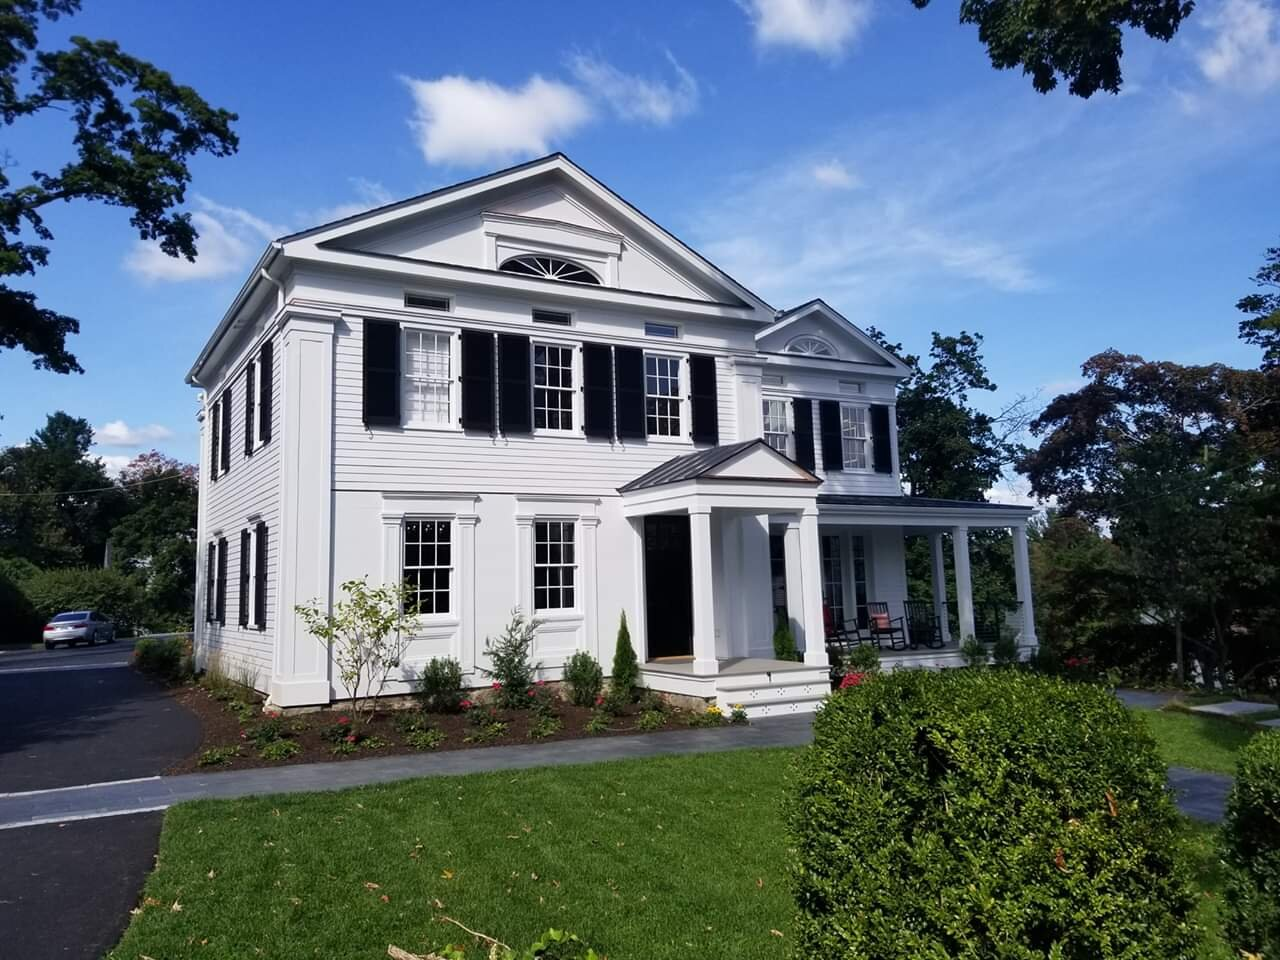 4 main street new canaan CT TOH ideas house greek revivalThis Old House 2019 Idea House TOH 2018 Idea House. TOH Idea Houses ... Have a Look Inside the 2019 Idea House New Canaan CT TOH ideas house greek revival #toh2019ideahouse #thisoldhouse #toh stickley furniture uttermost toh new canaan CT